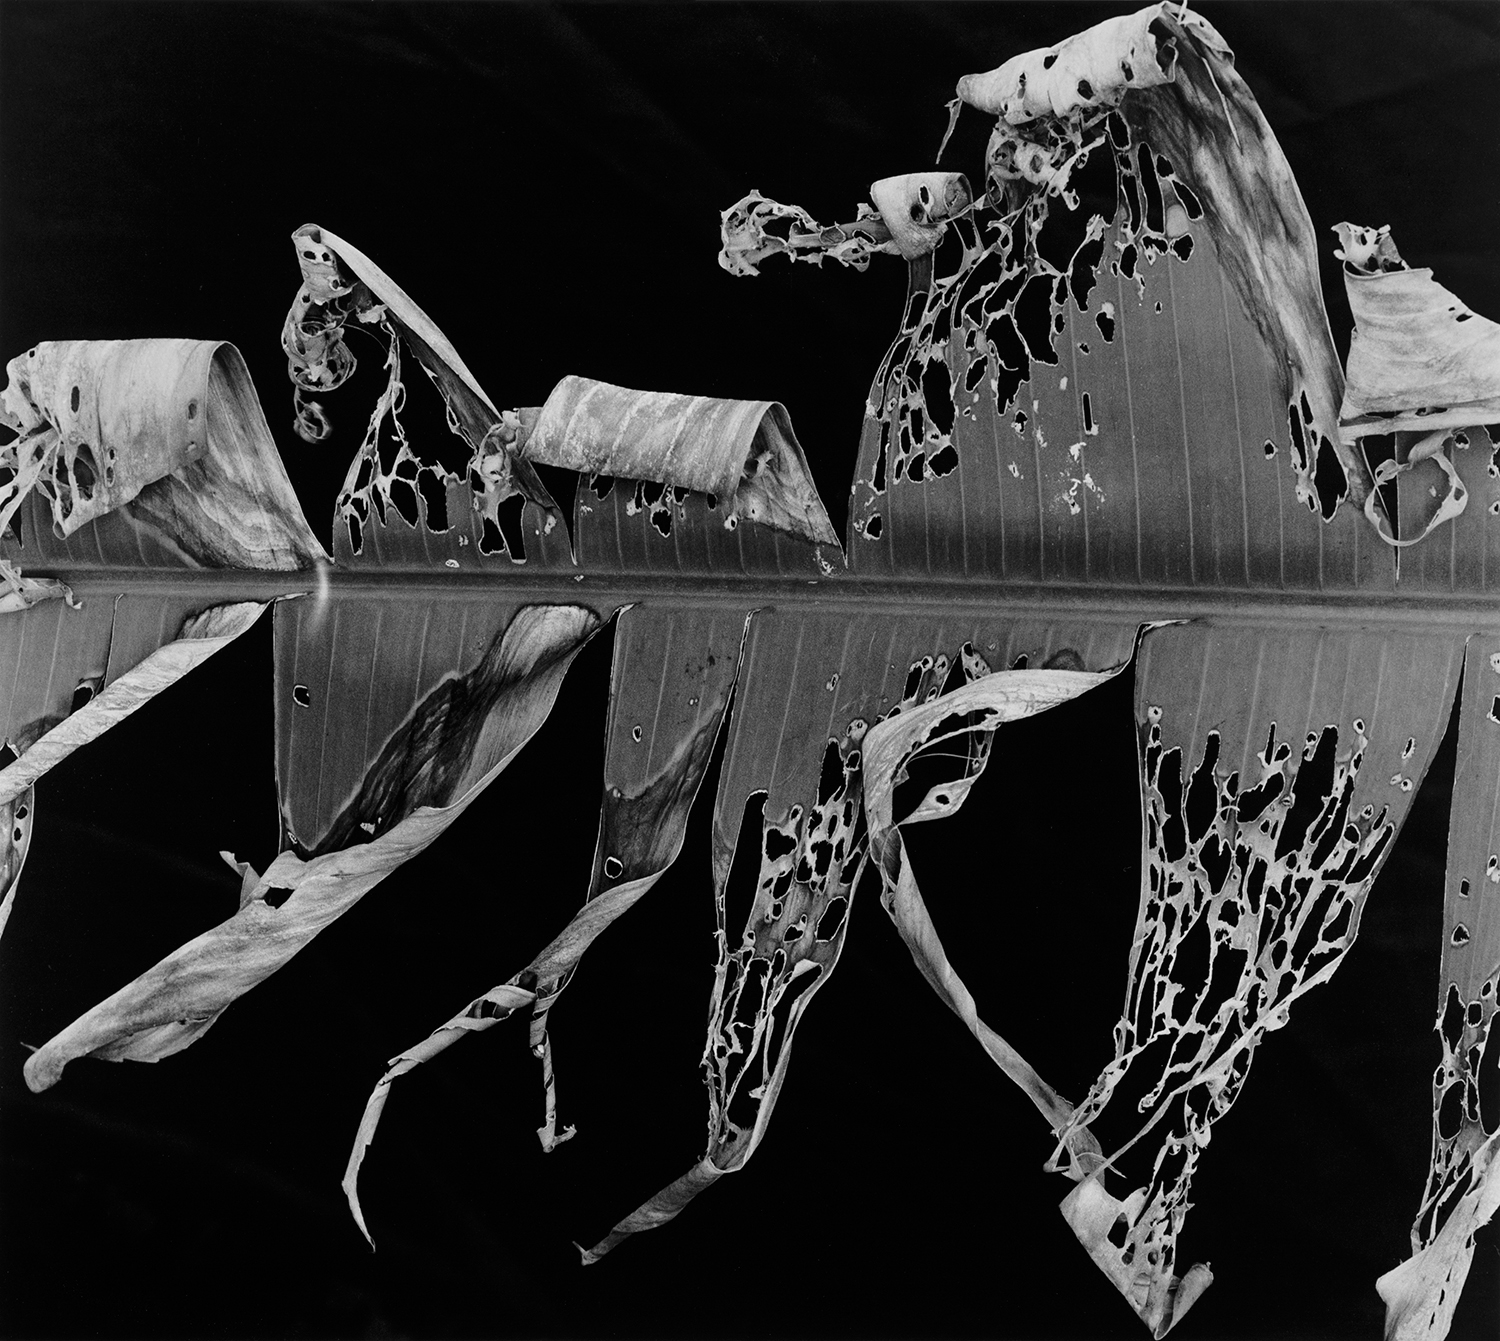 Brett Weston, Hawaii - Plate 3 - Final retouched file